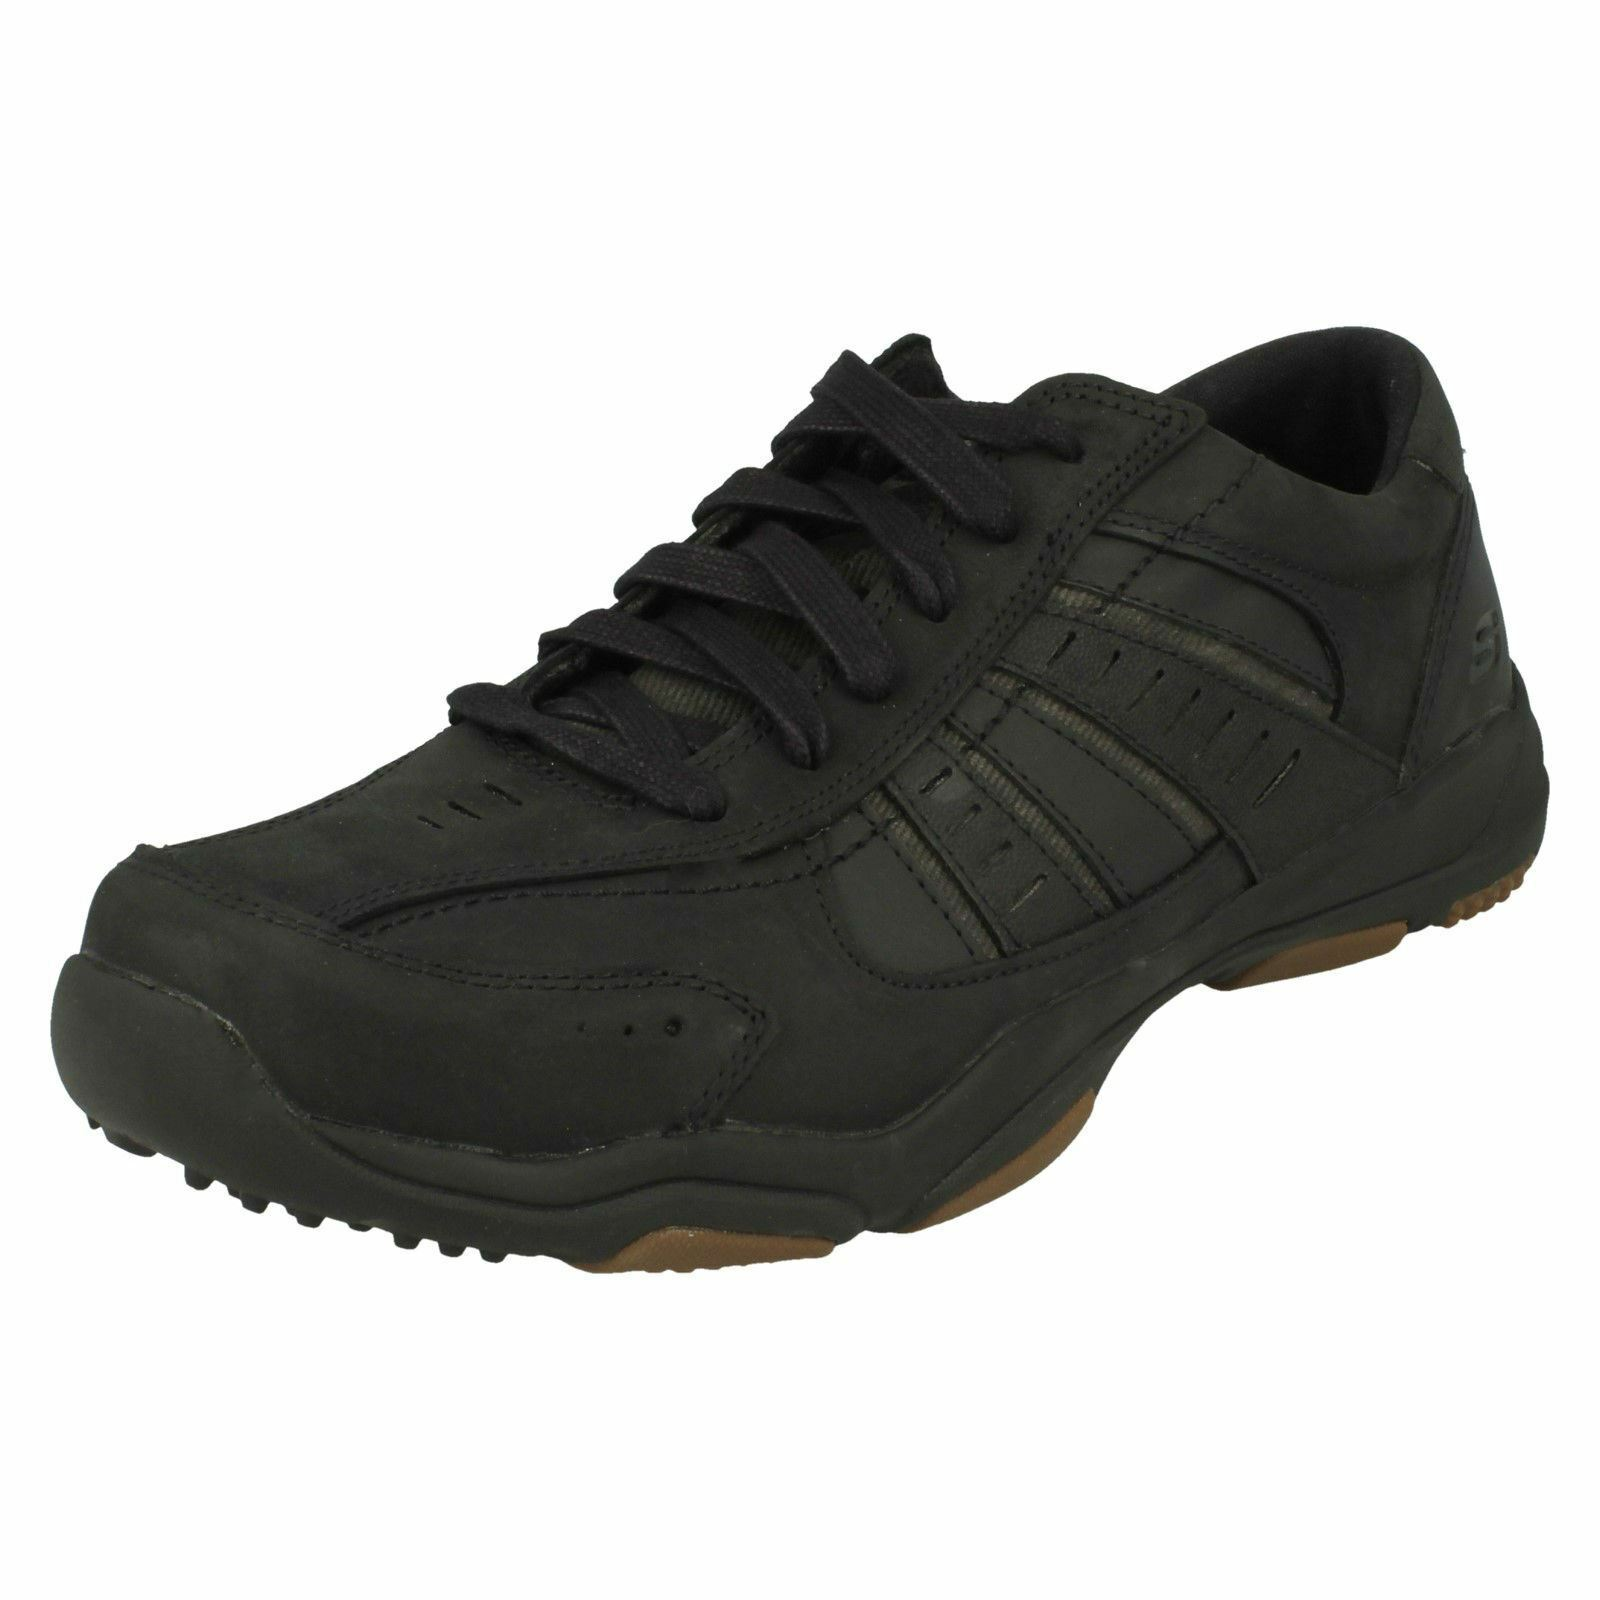 'Mens Skechers' Casual Lace up Trainers - Nerick